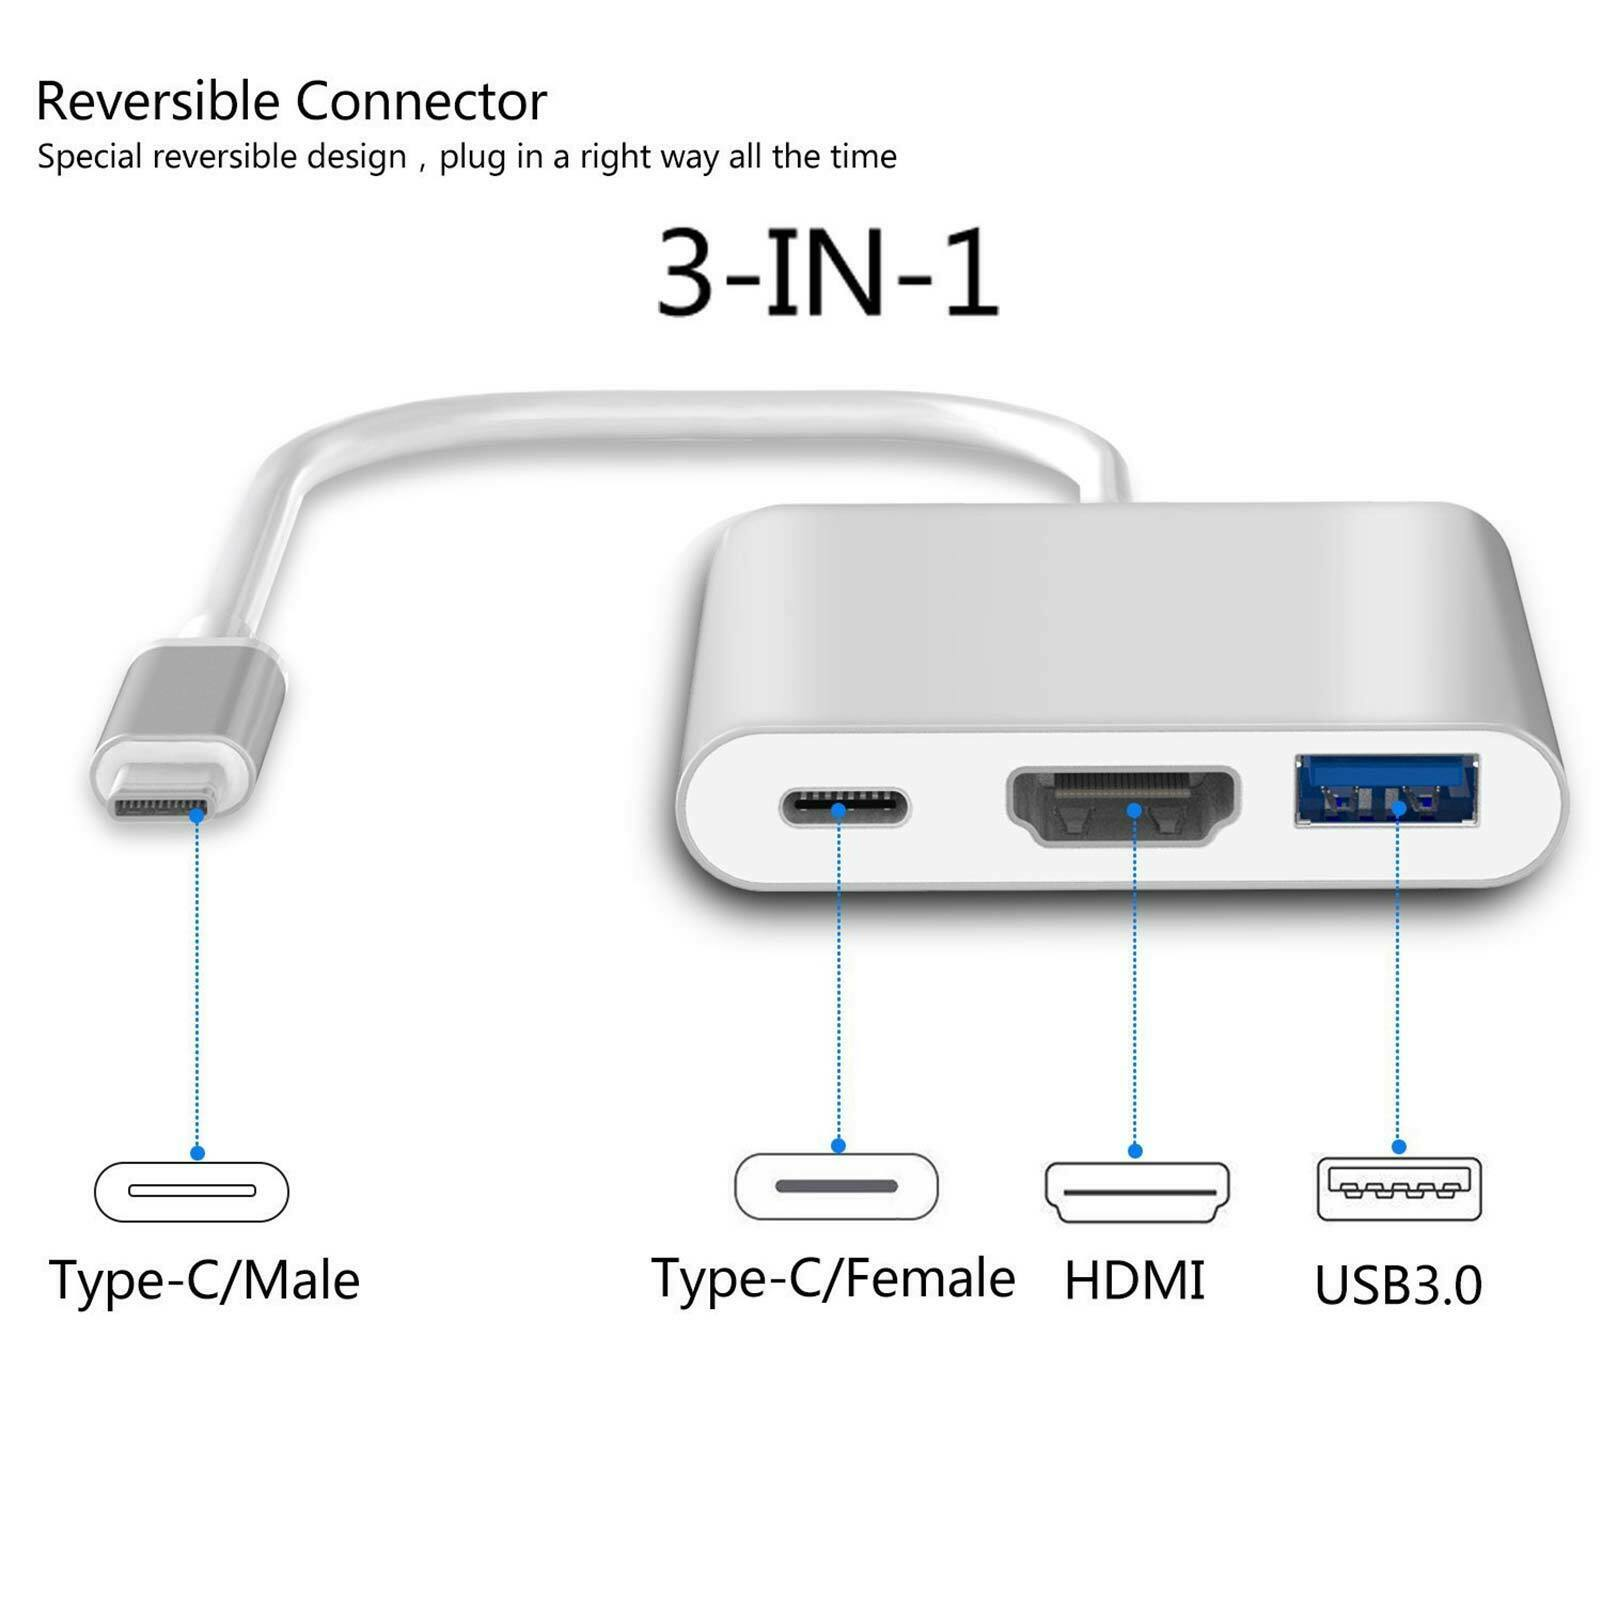 Type C USB 3.1 to USB-C HDMI 4K USB 3.0 HUB Cable Digital AV Multi Port Adapter